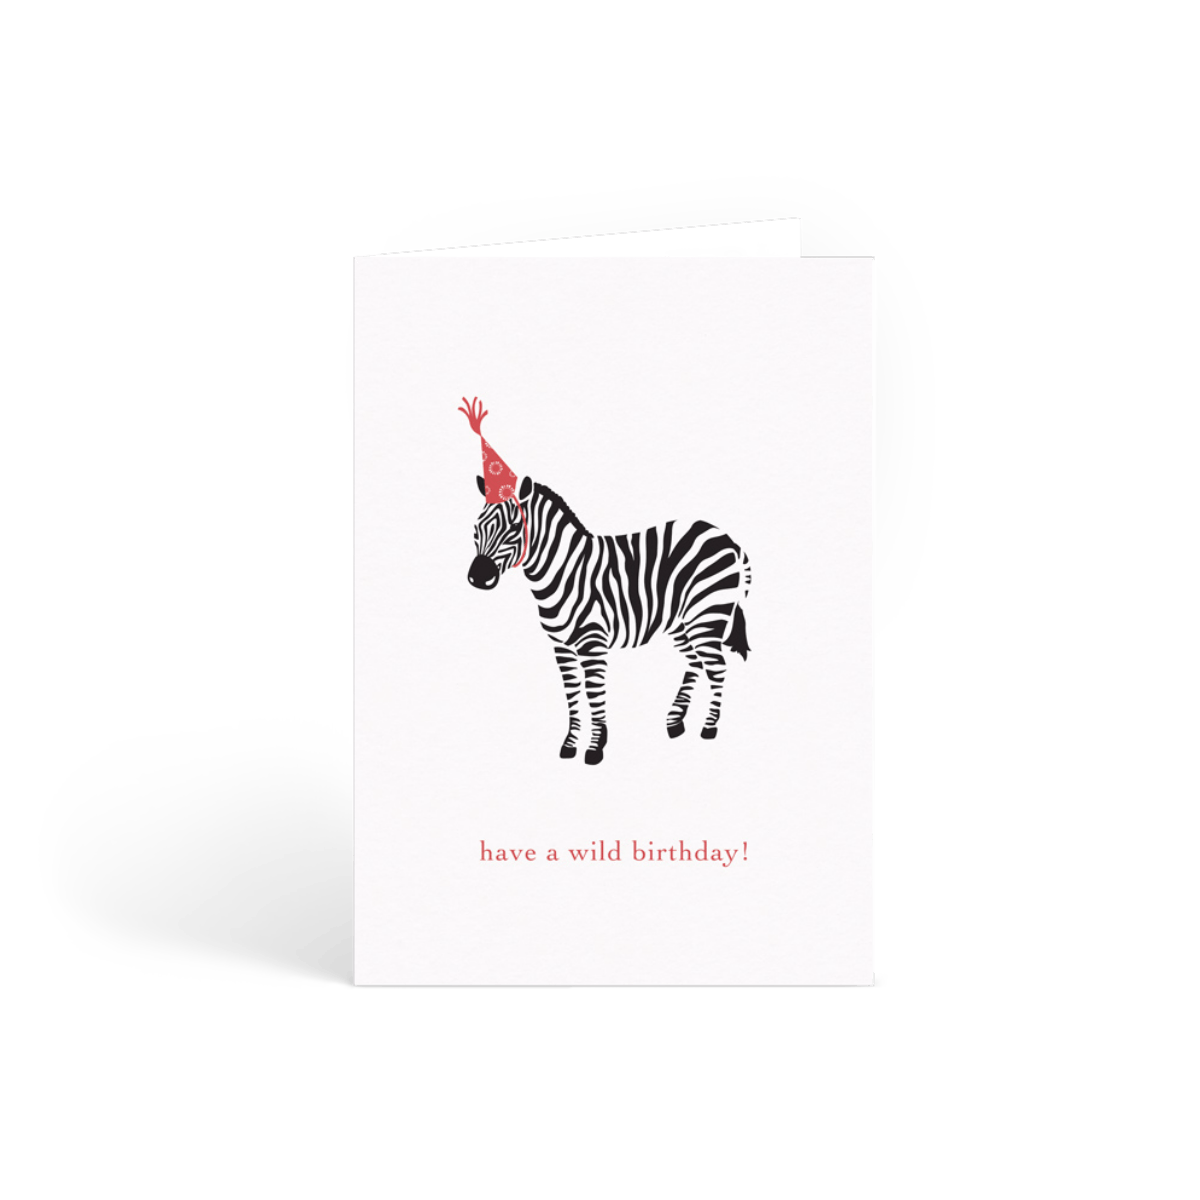 Https%3a%2f%2fwww.papier.com%2fproduct image%2f10834%2f2%2fbirthday zebra 2763 front 1473339861.png?ixlib=rb 1.1